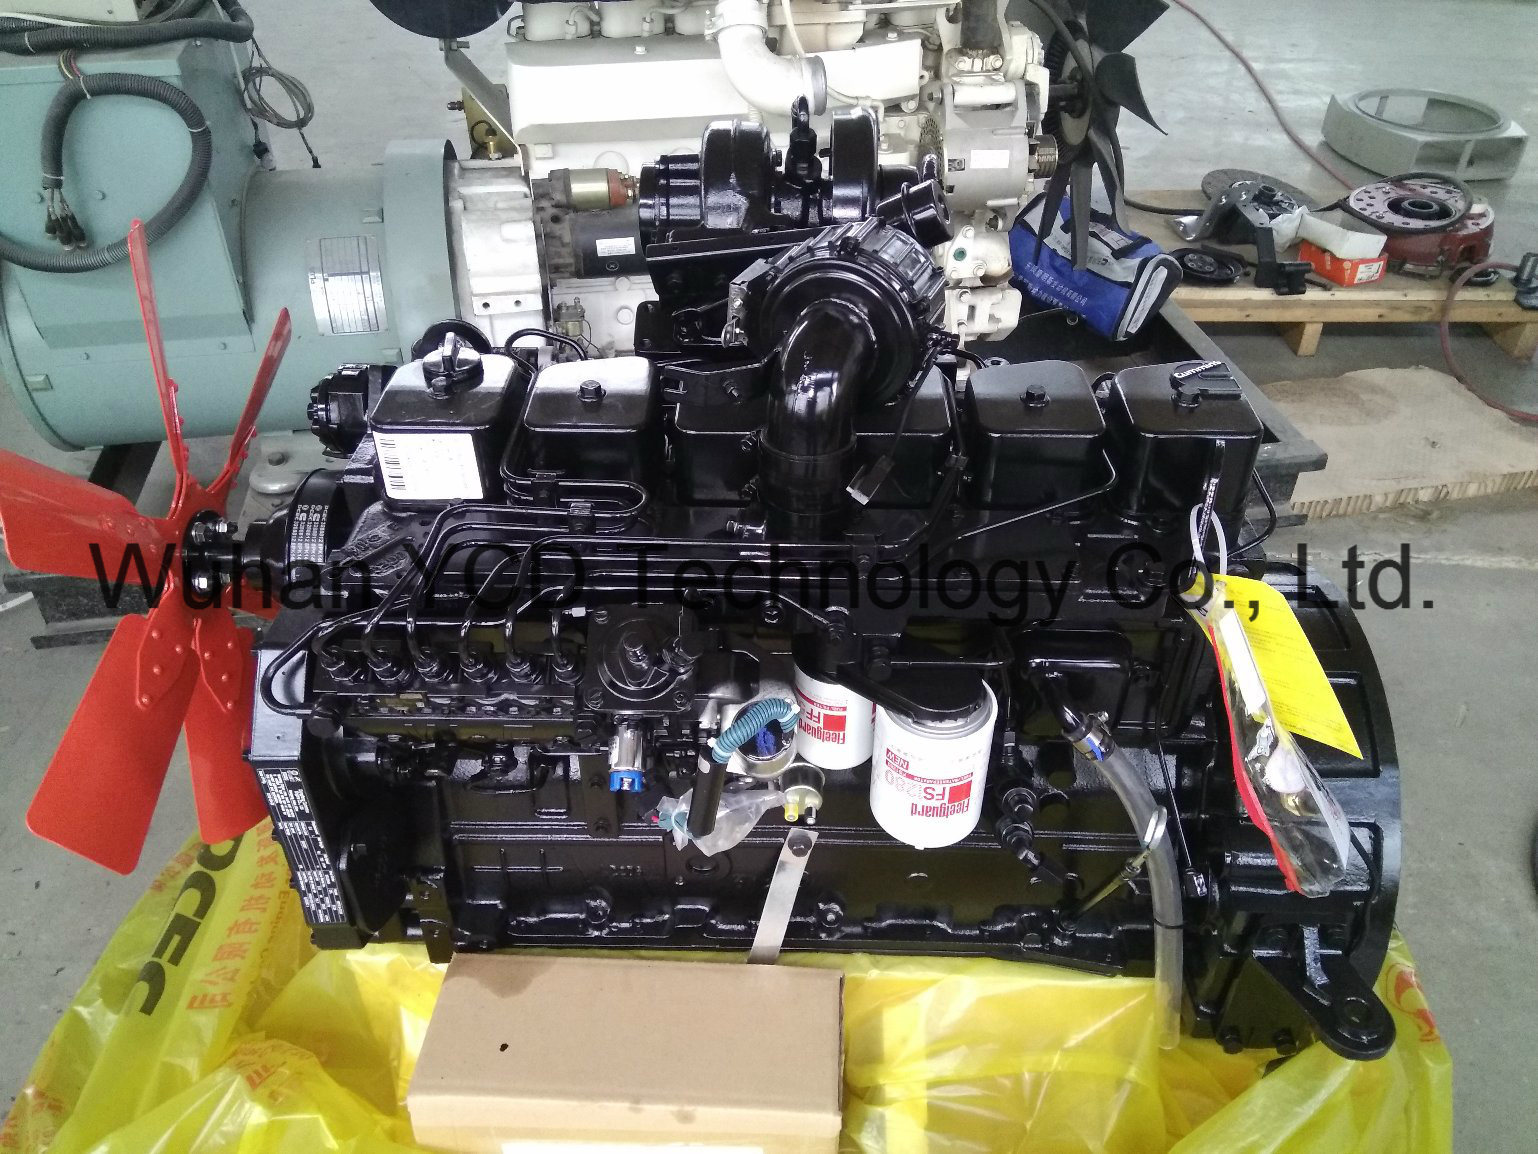 Industrial Engines for Water Pump/Generator Set/Air Compressor/Construction Machinery